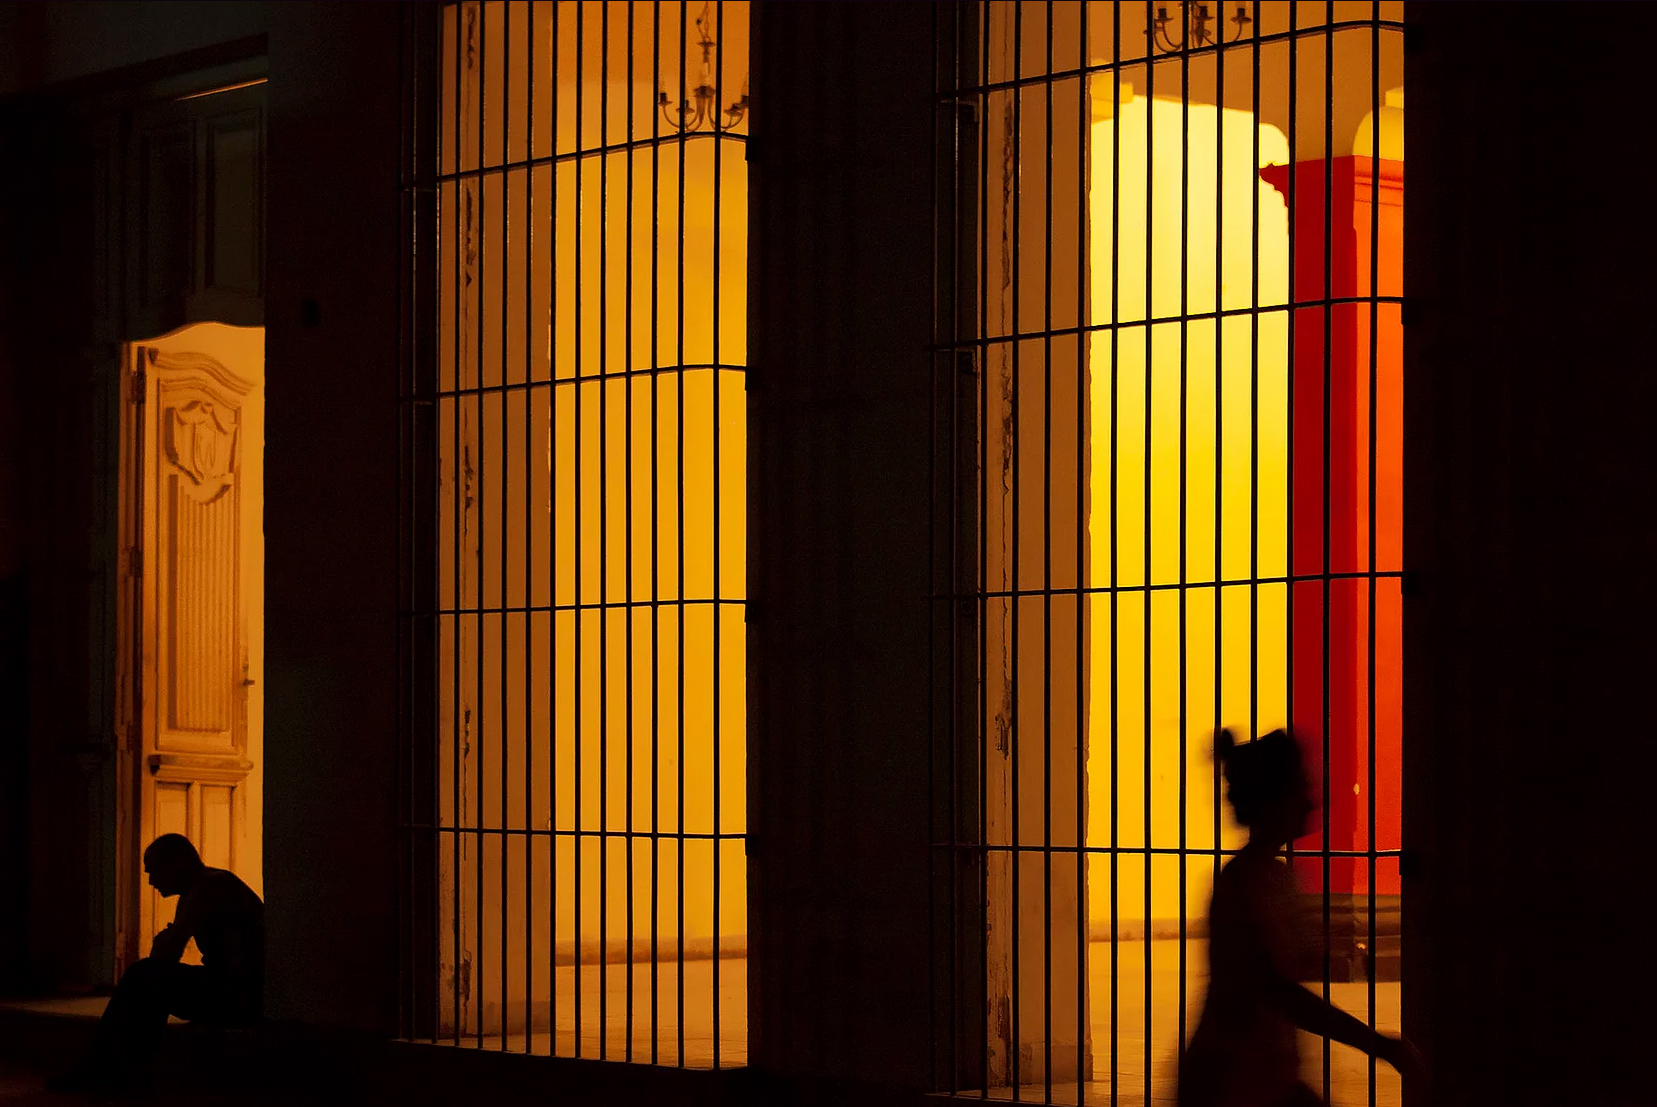 Color photo by Alex Almeida, silhouettes, Cuba.